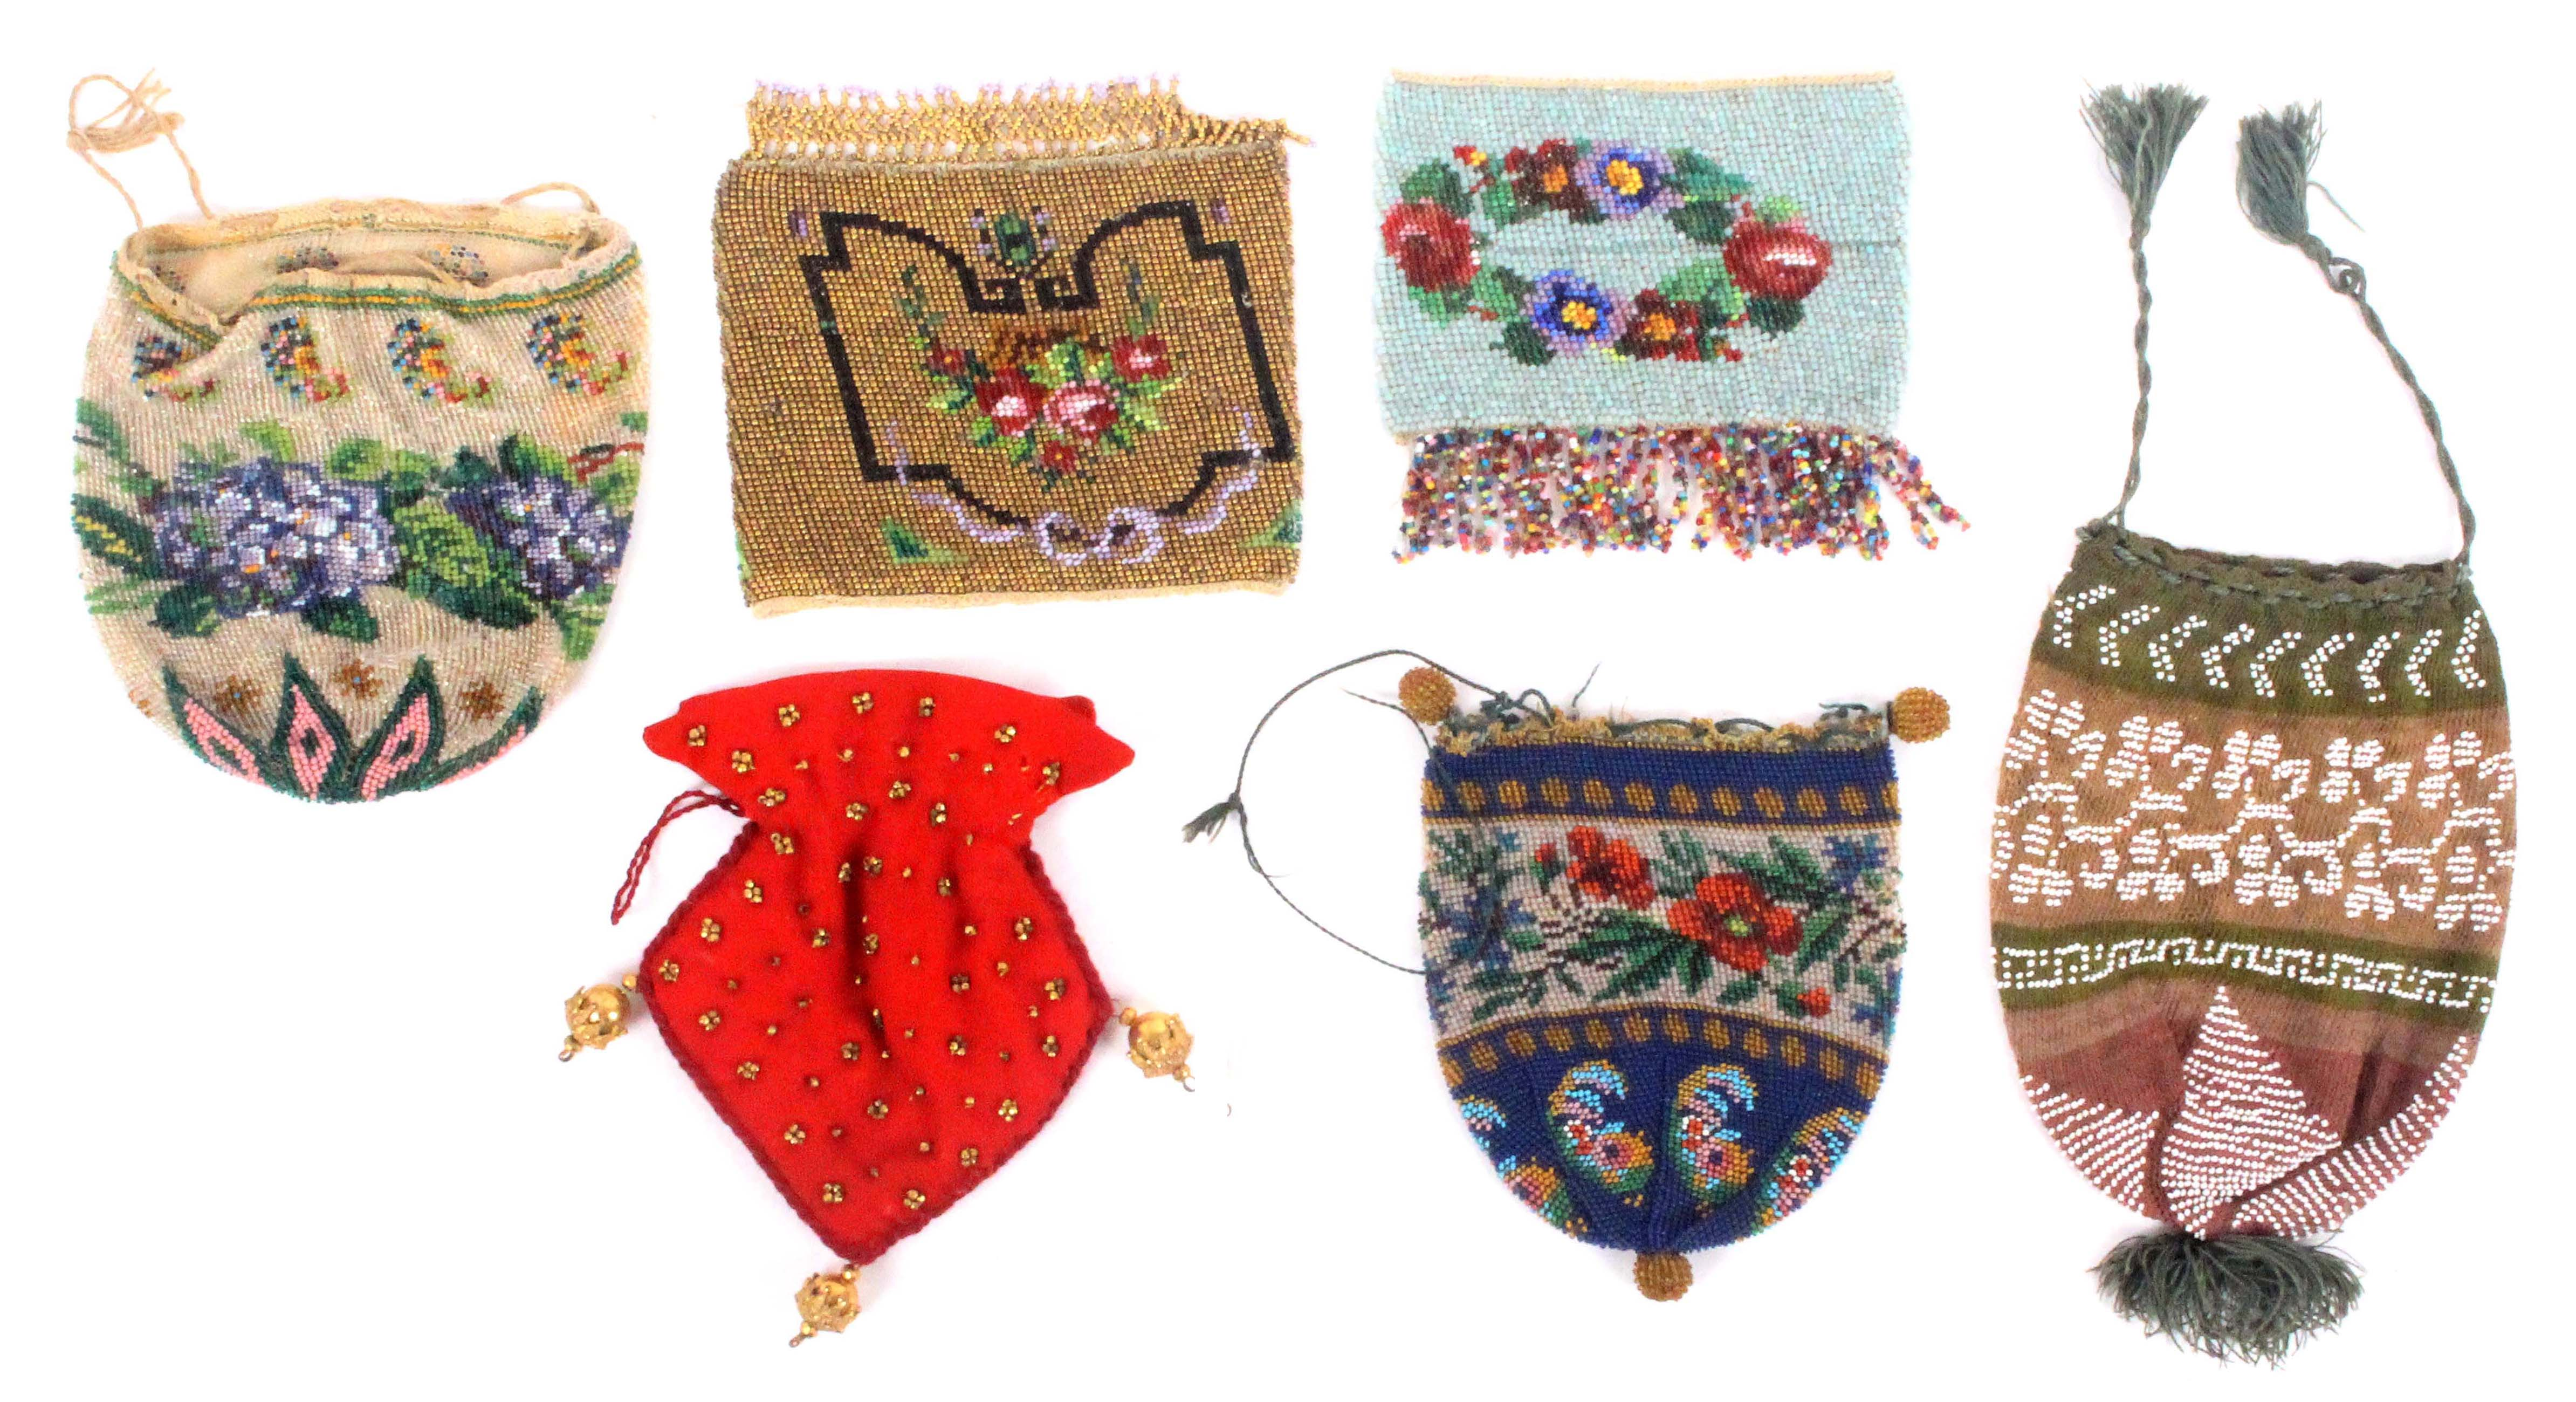 Six small 19th and 20th Century beadwork bags and purses, including two floral decorated draw string